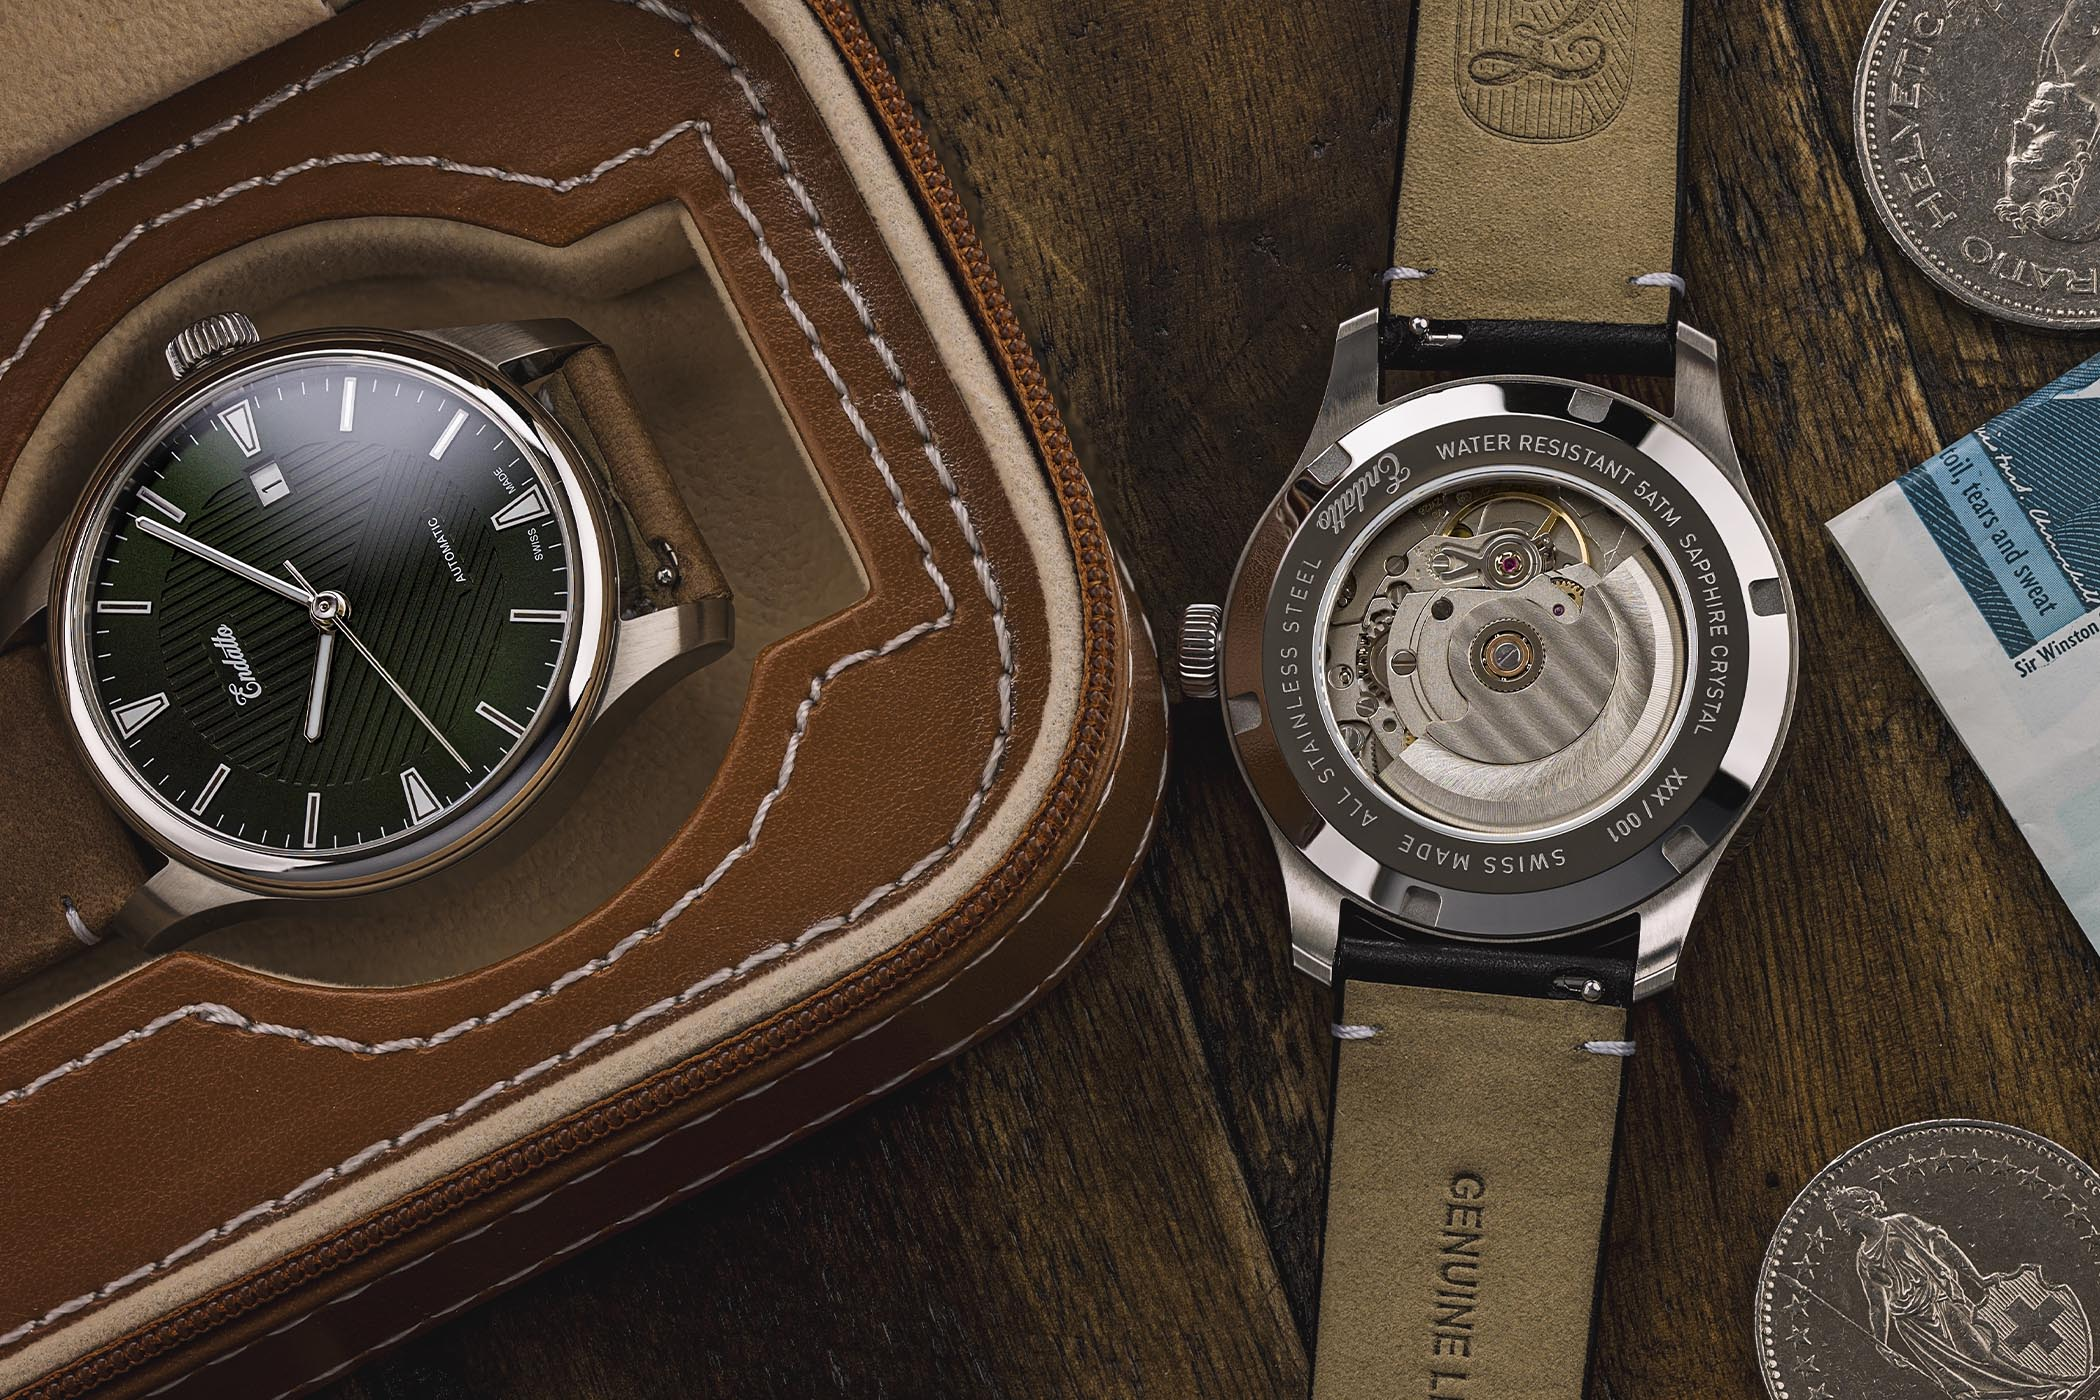 Endatto Watches Endatto-C1V1-and-C1V2-New-American-Watch-Brand-6